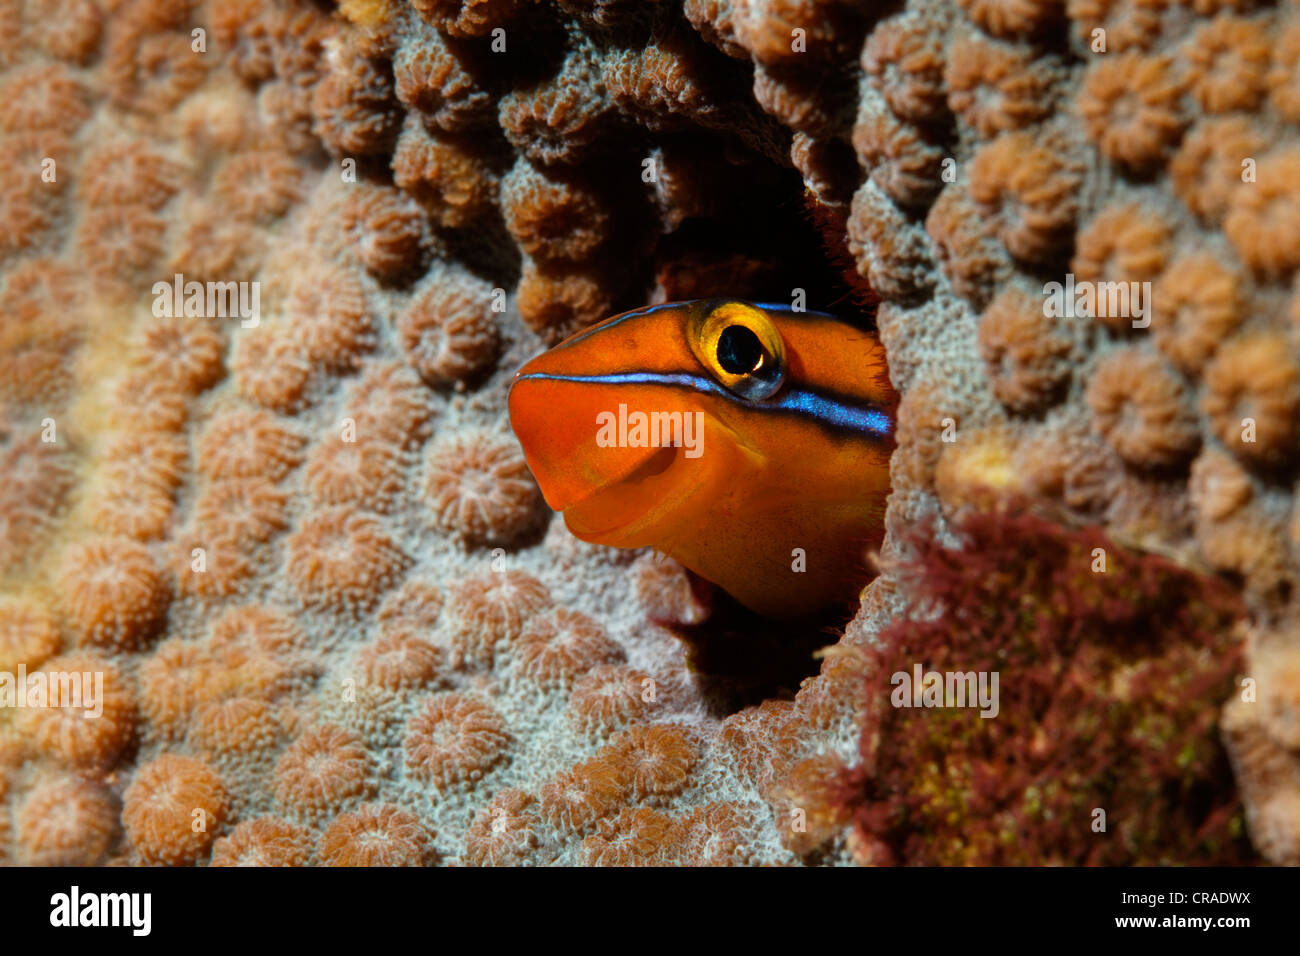 Mimic blenny or Piano fangblenny (Plagiotremus tapeinosoma) looking out of home in coral, Hashemite Kingdom of Jordan, - Stock Image